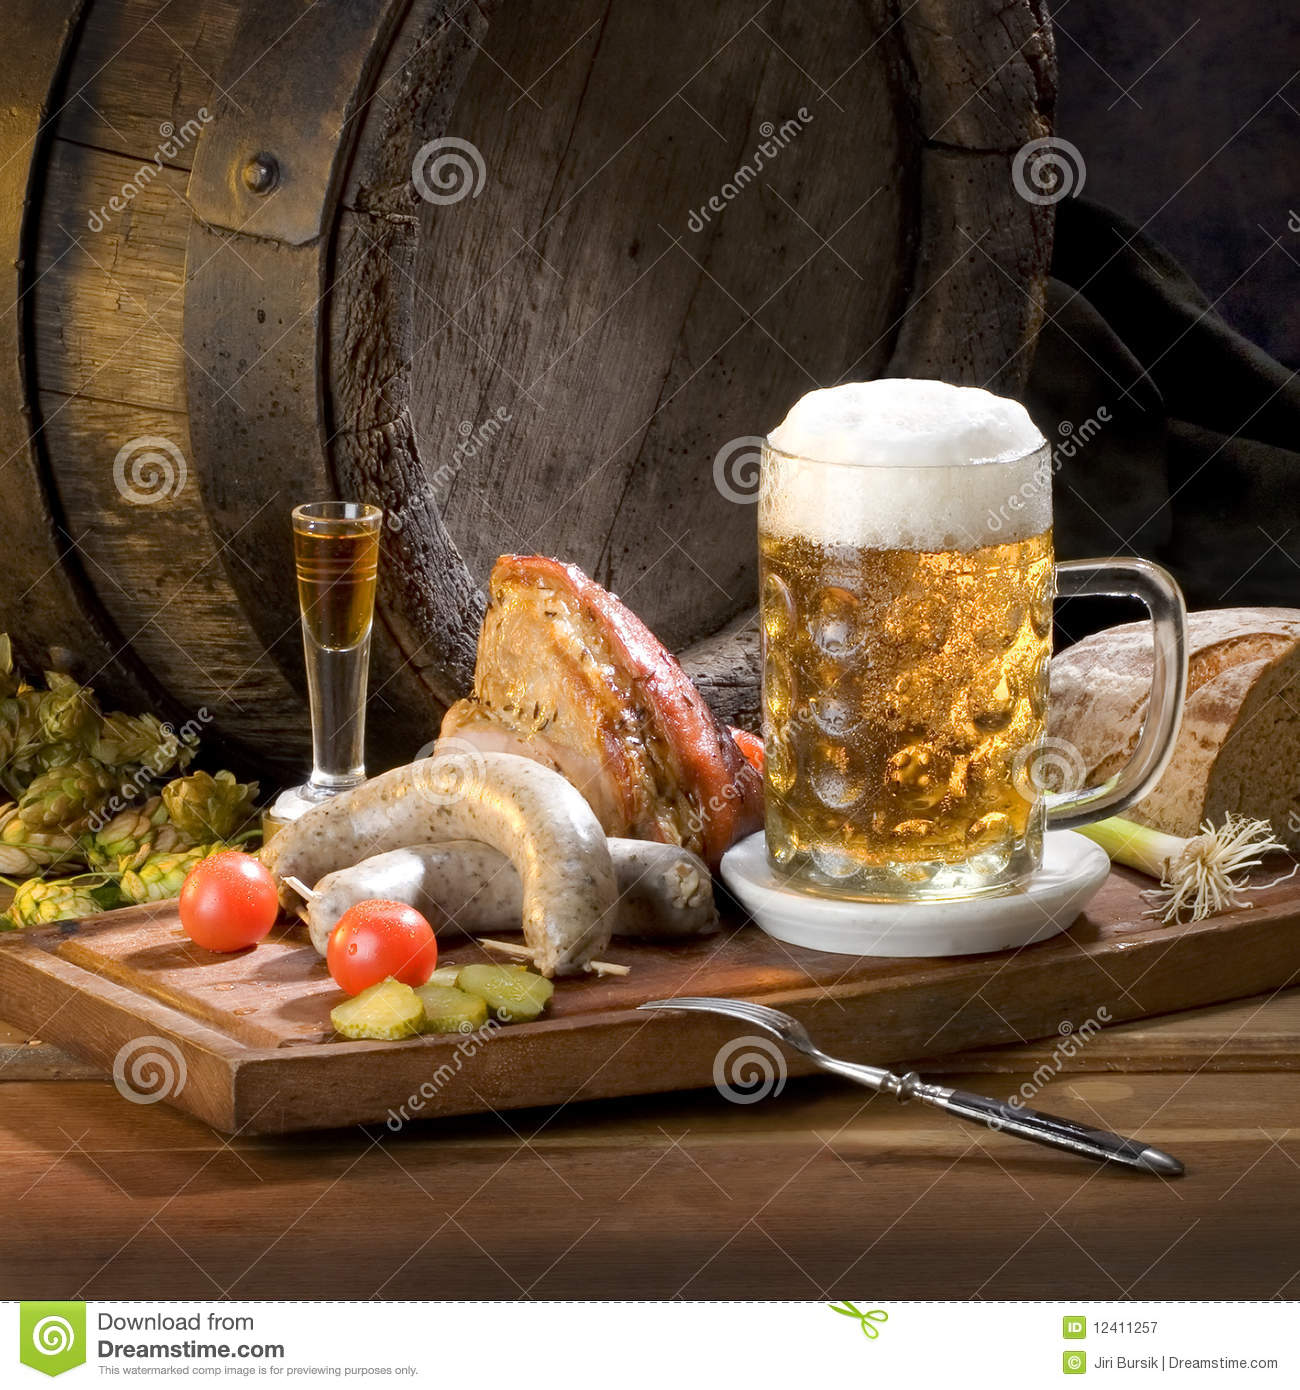 Download Still Life With Beer And Food Stock Image - Image of dinner, czech: 12411257